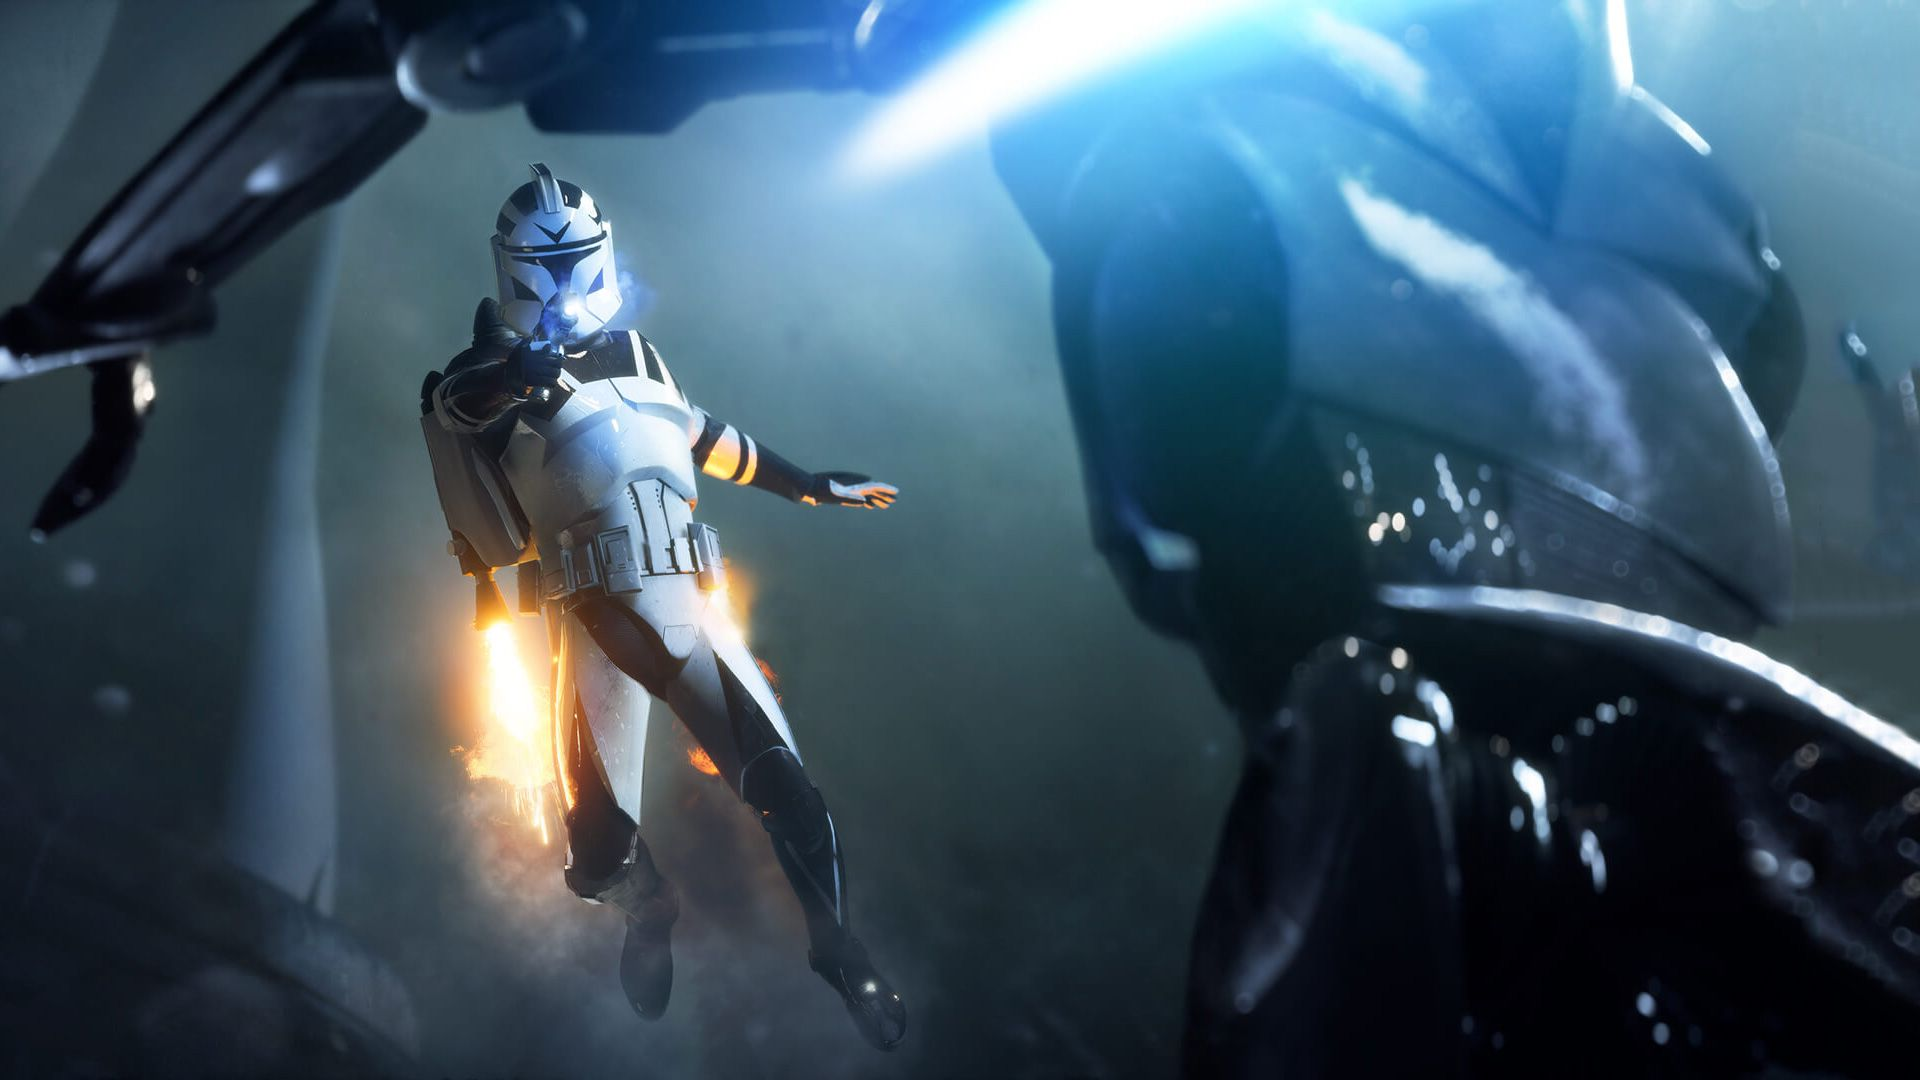 Star Wars Battlefront 2 Wallpapers Top Free Star Wars Battlefront 2 Backgrounds Wallpaperaccess